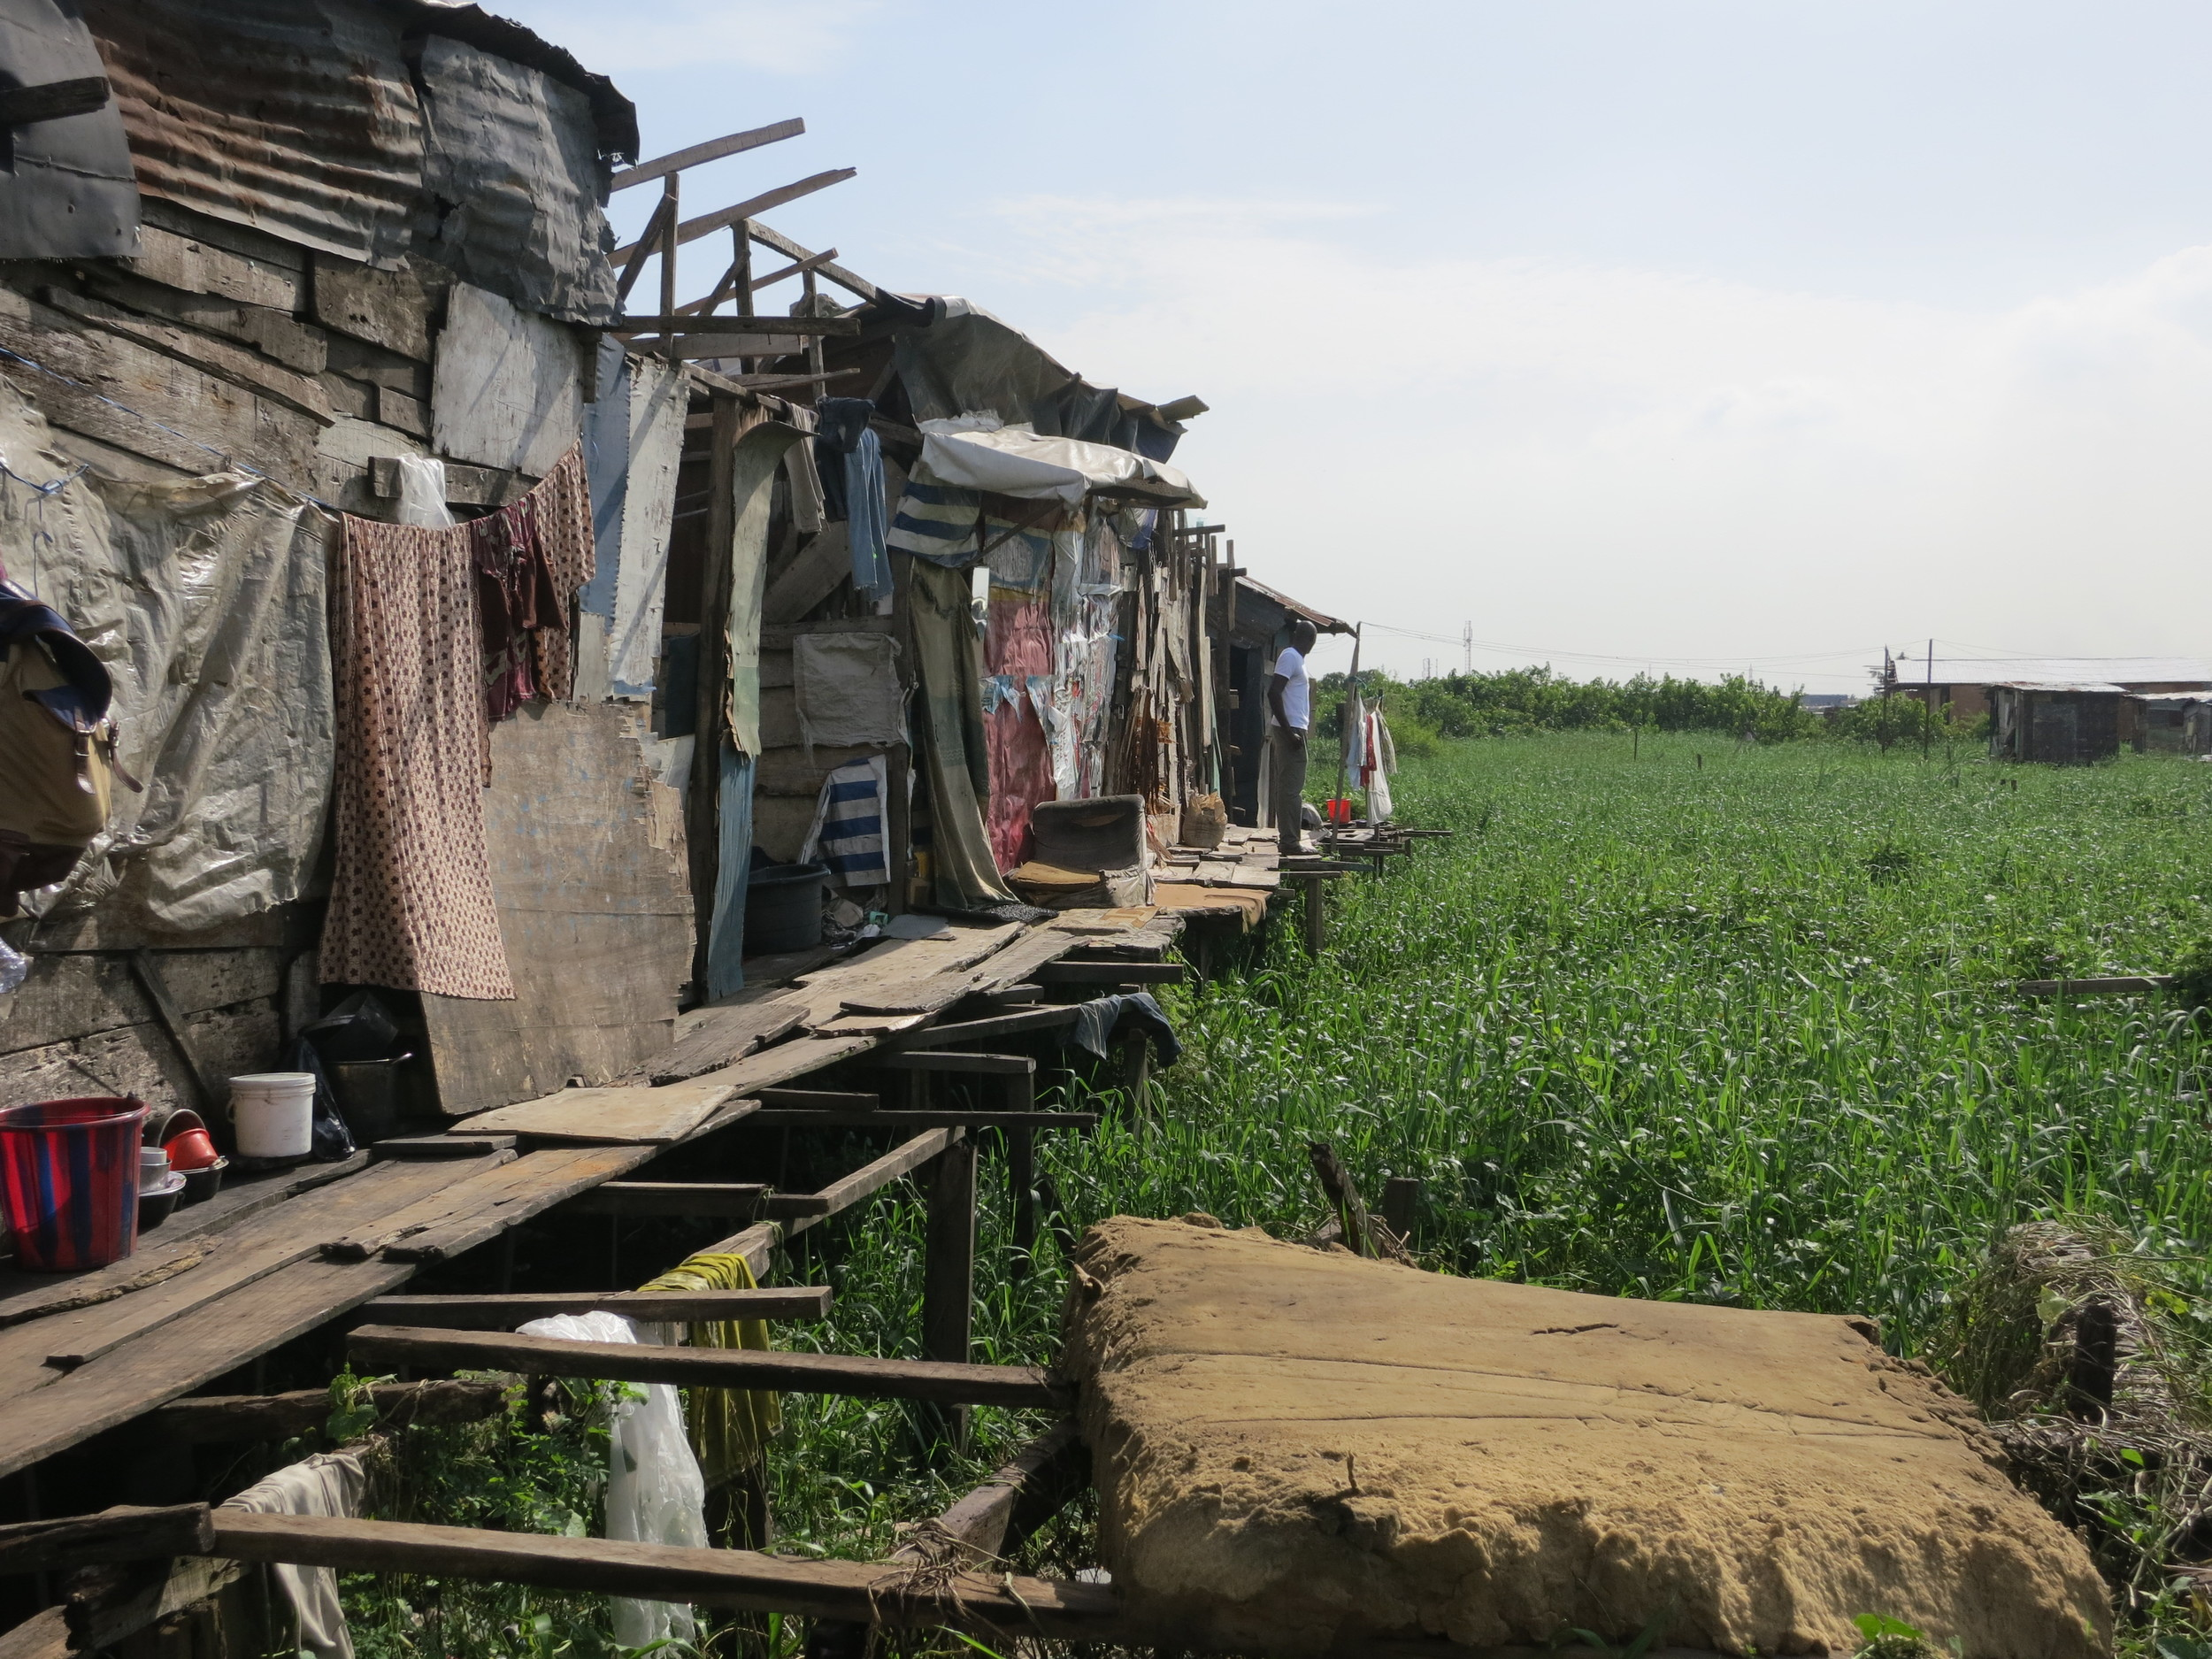 With rapid migration into cities and high birth rates, there is intense pressure on land in urban centers, resulting in innovative building solutions, like shacks on stilts above swamps and drainages.